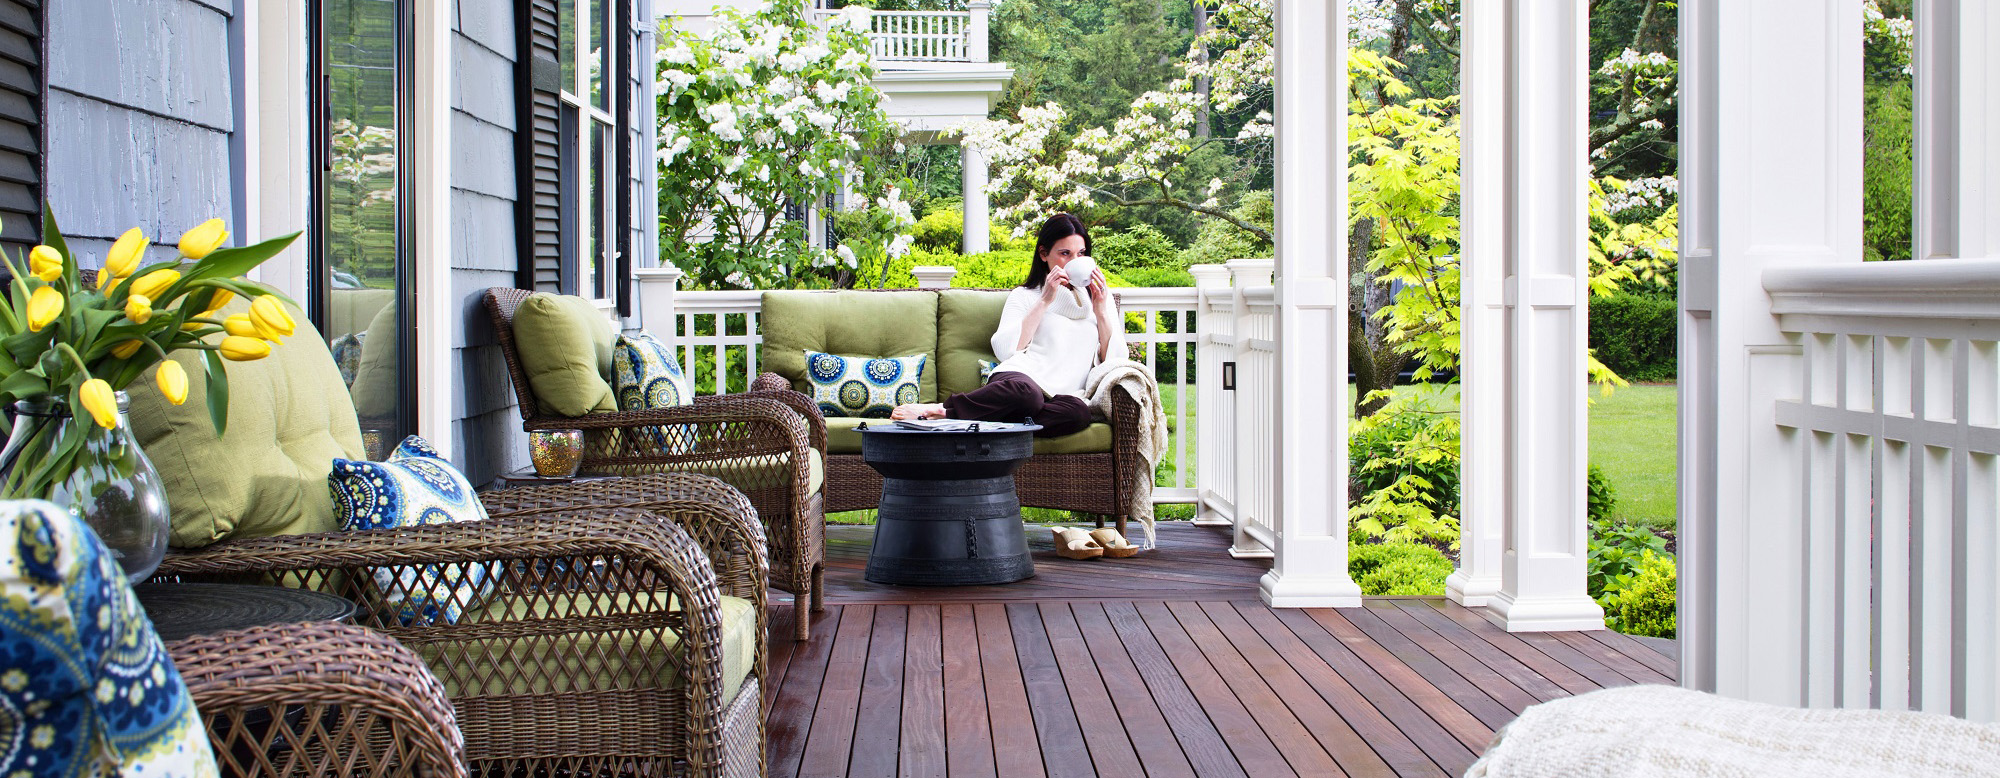 Daydreaming-about-a-new-outdoor-living-space-?